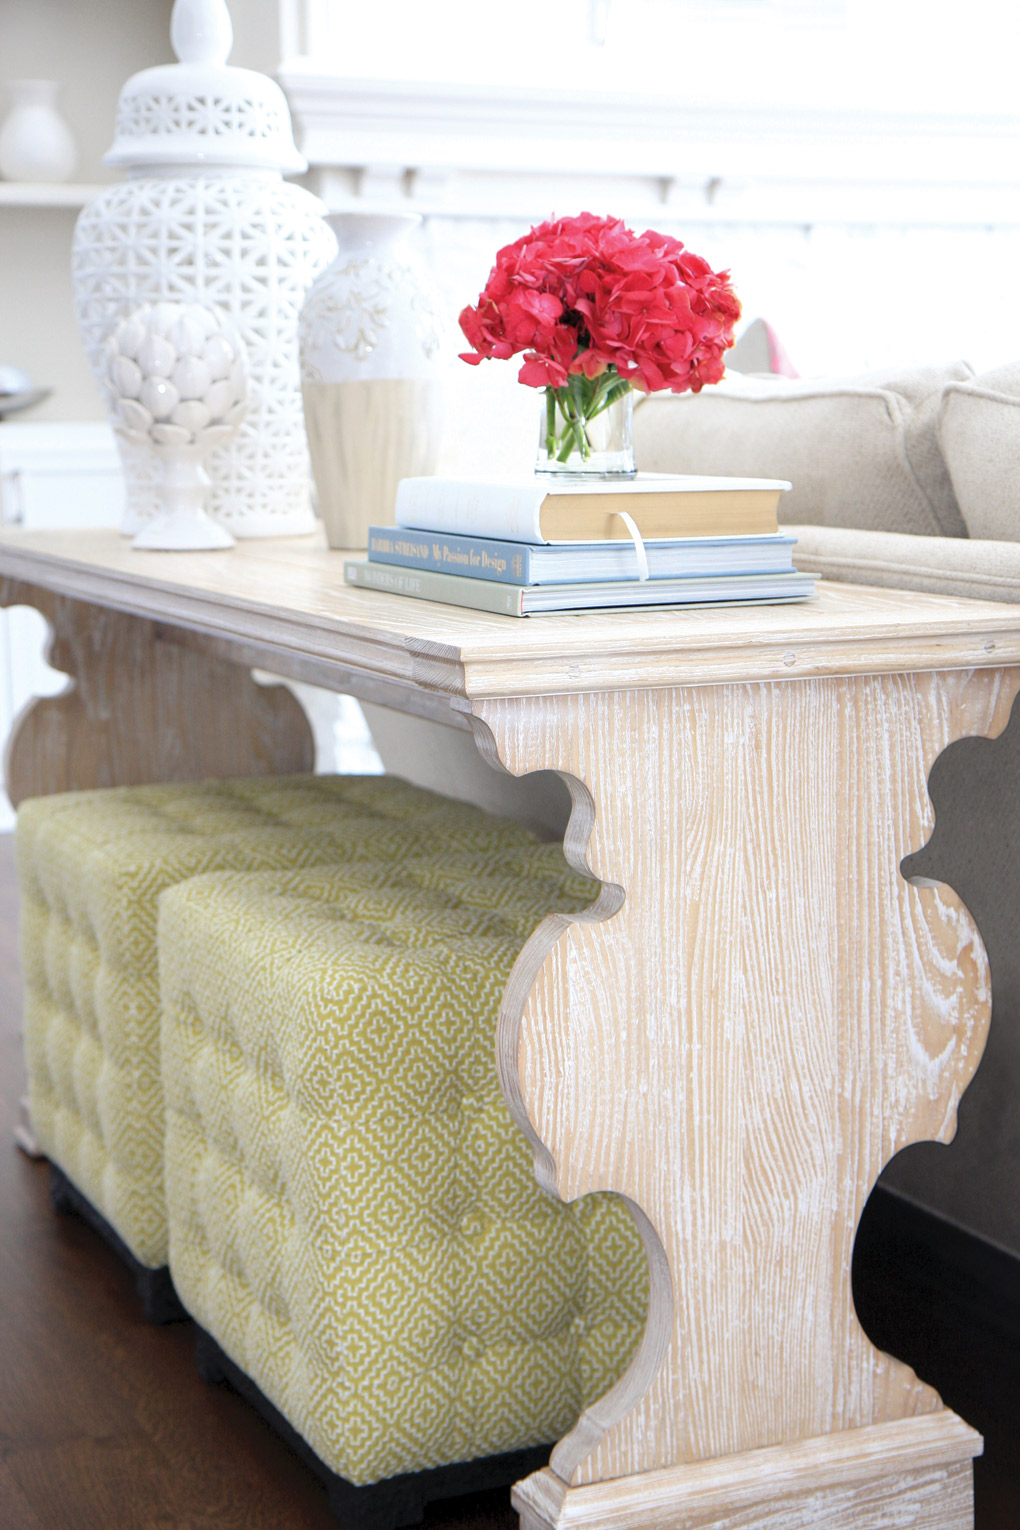 Bria-Hammel-Interiors_Sofa-Table